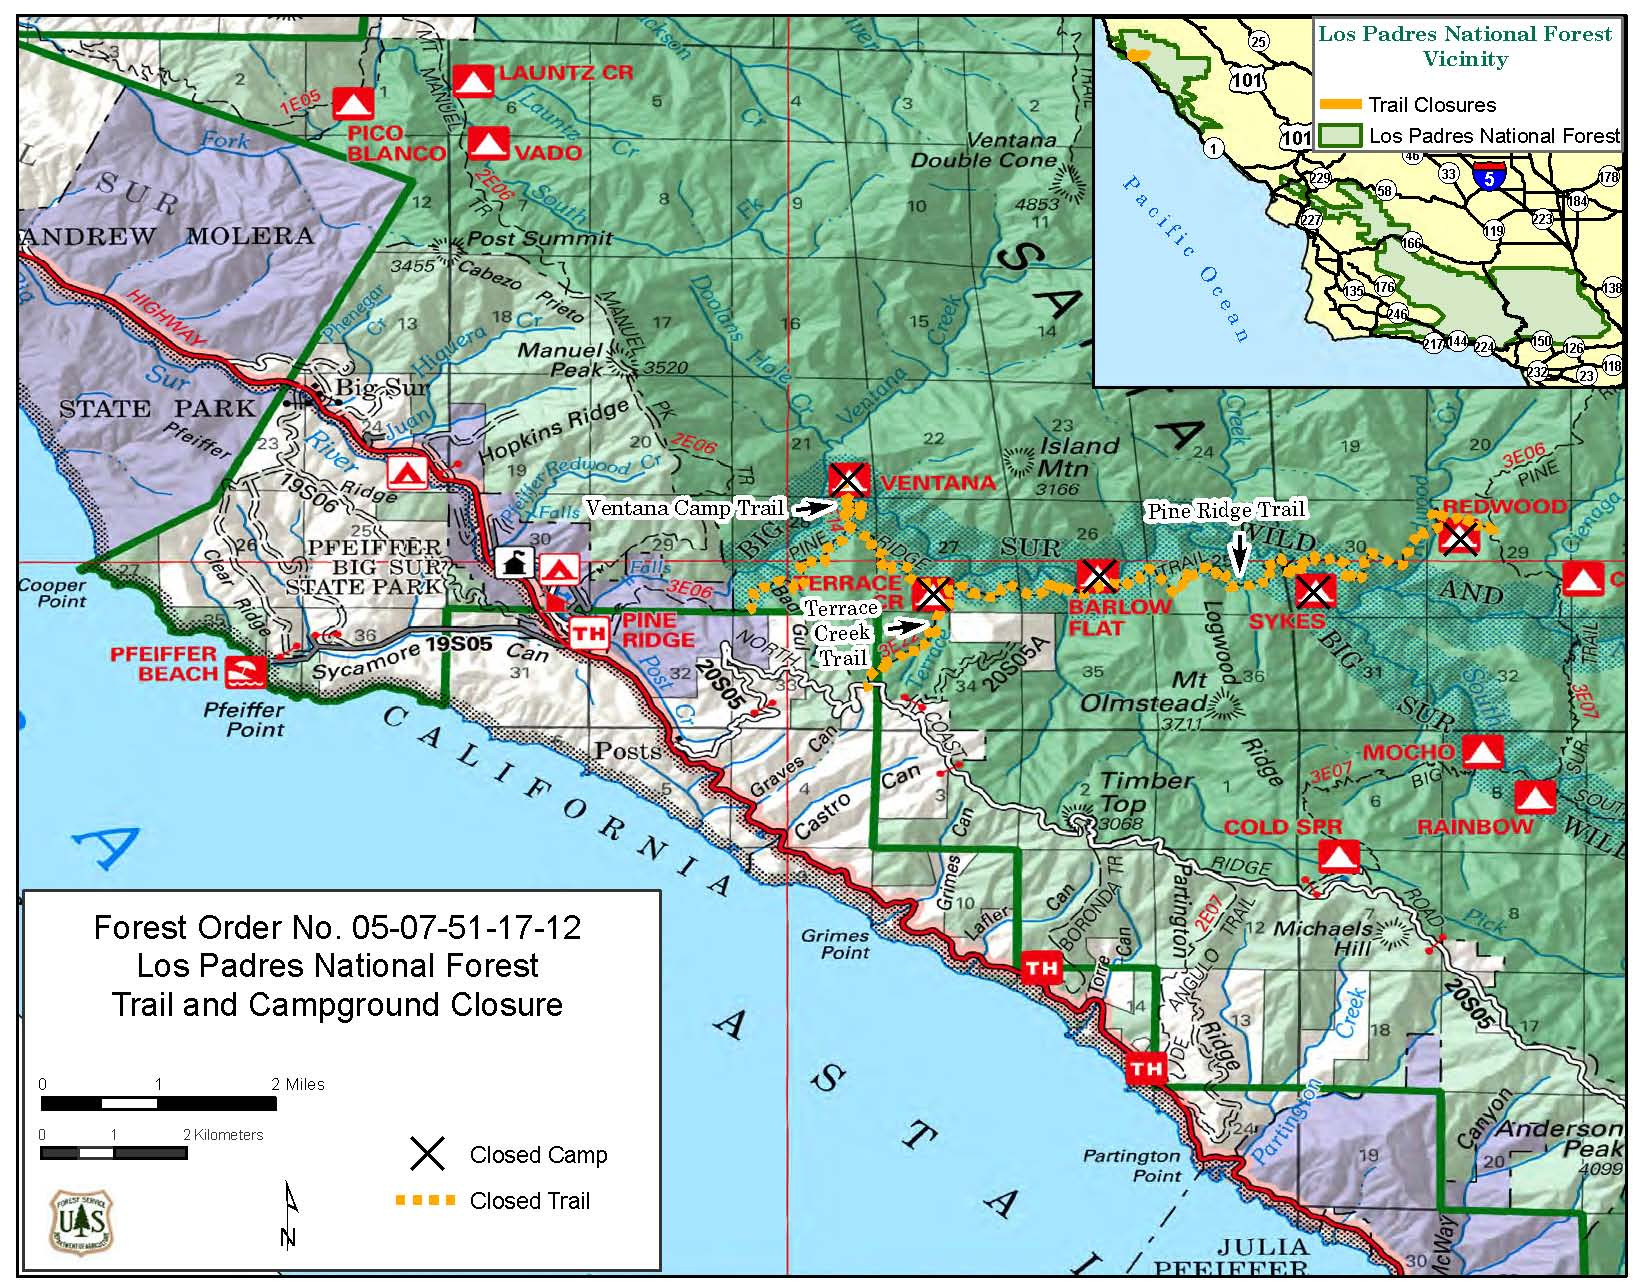 Redwood Forest California Map New Sykes Camp - Ettcarworld - Redwood Forest California Map